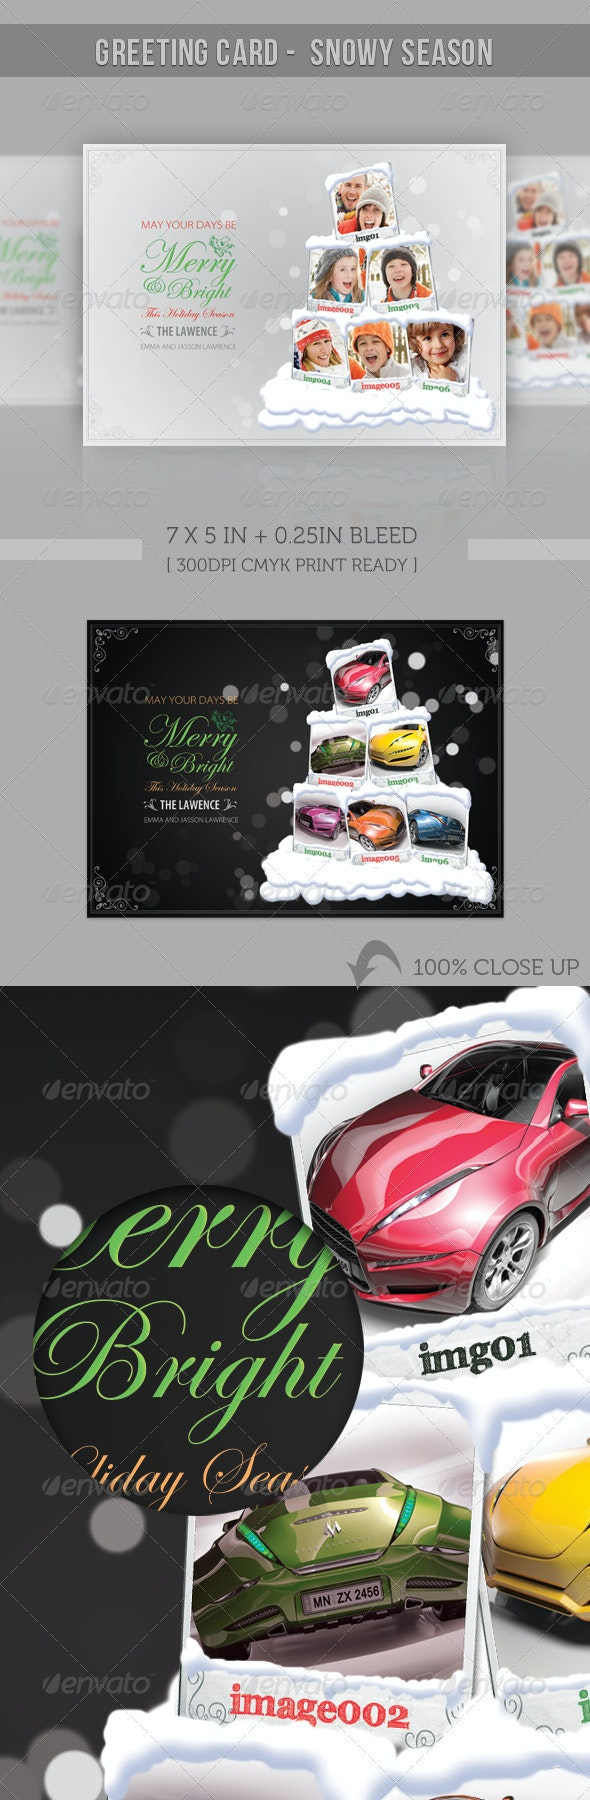 Happy Holiday/ Merry Christmas - Snowy Greeting - Holiday Greeting Cards